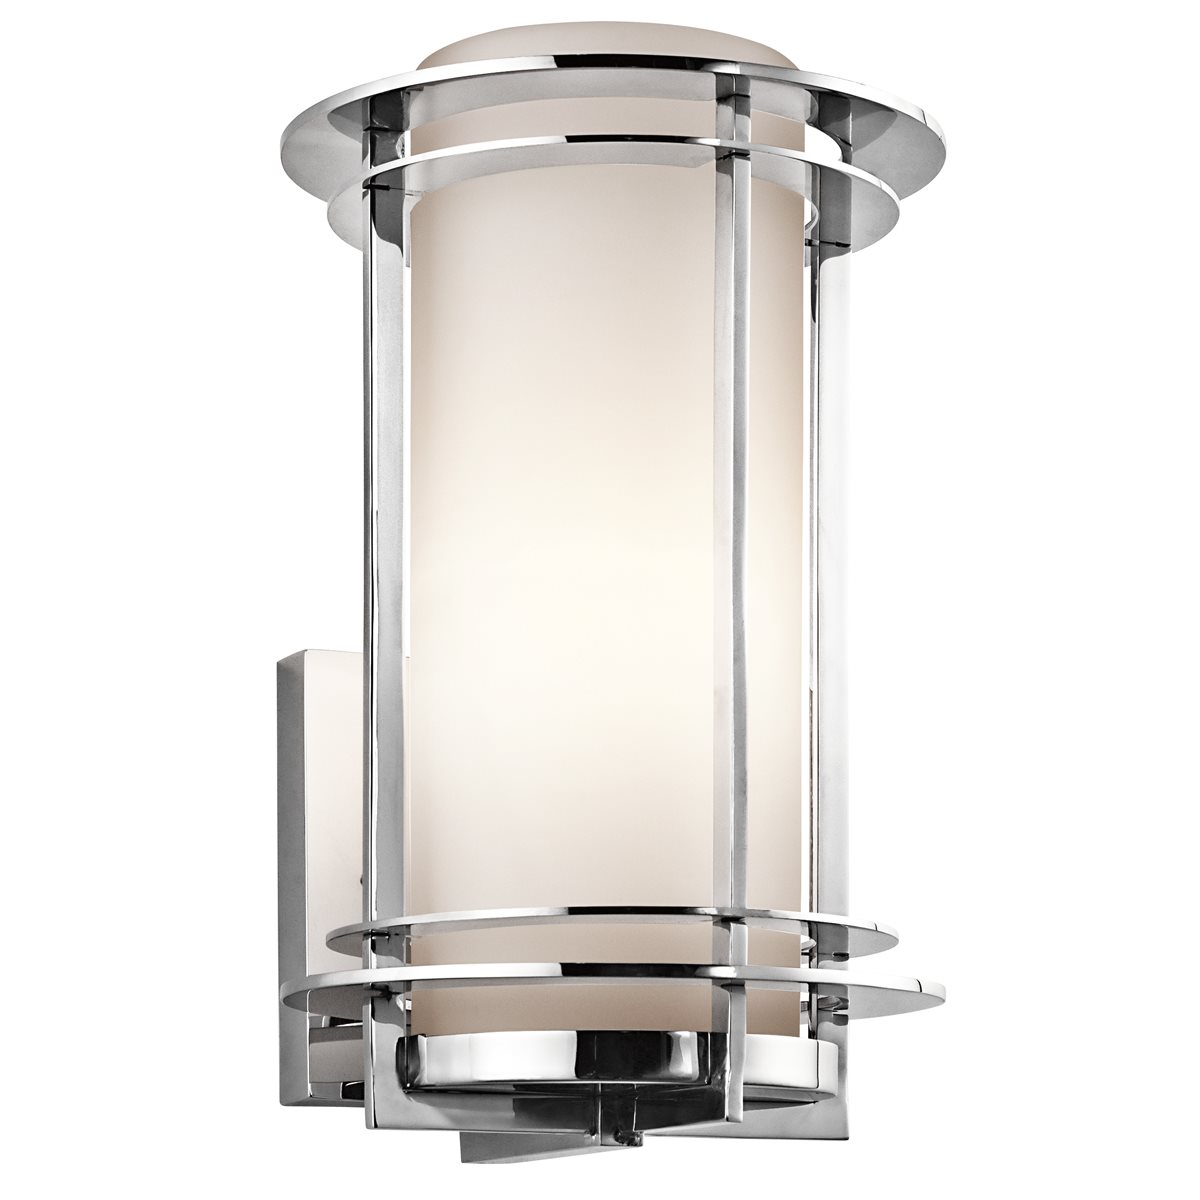 Kichler lighting 49345pss316 pacific edge modern contemporary kichler lighting pacific edge modern contemporary outdoor wall sconce kch 49345pss316 see details amipublicfo Choice Image